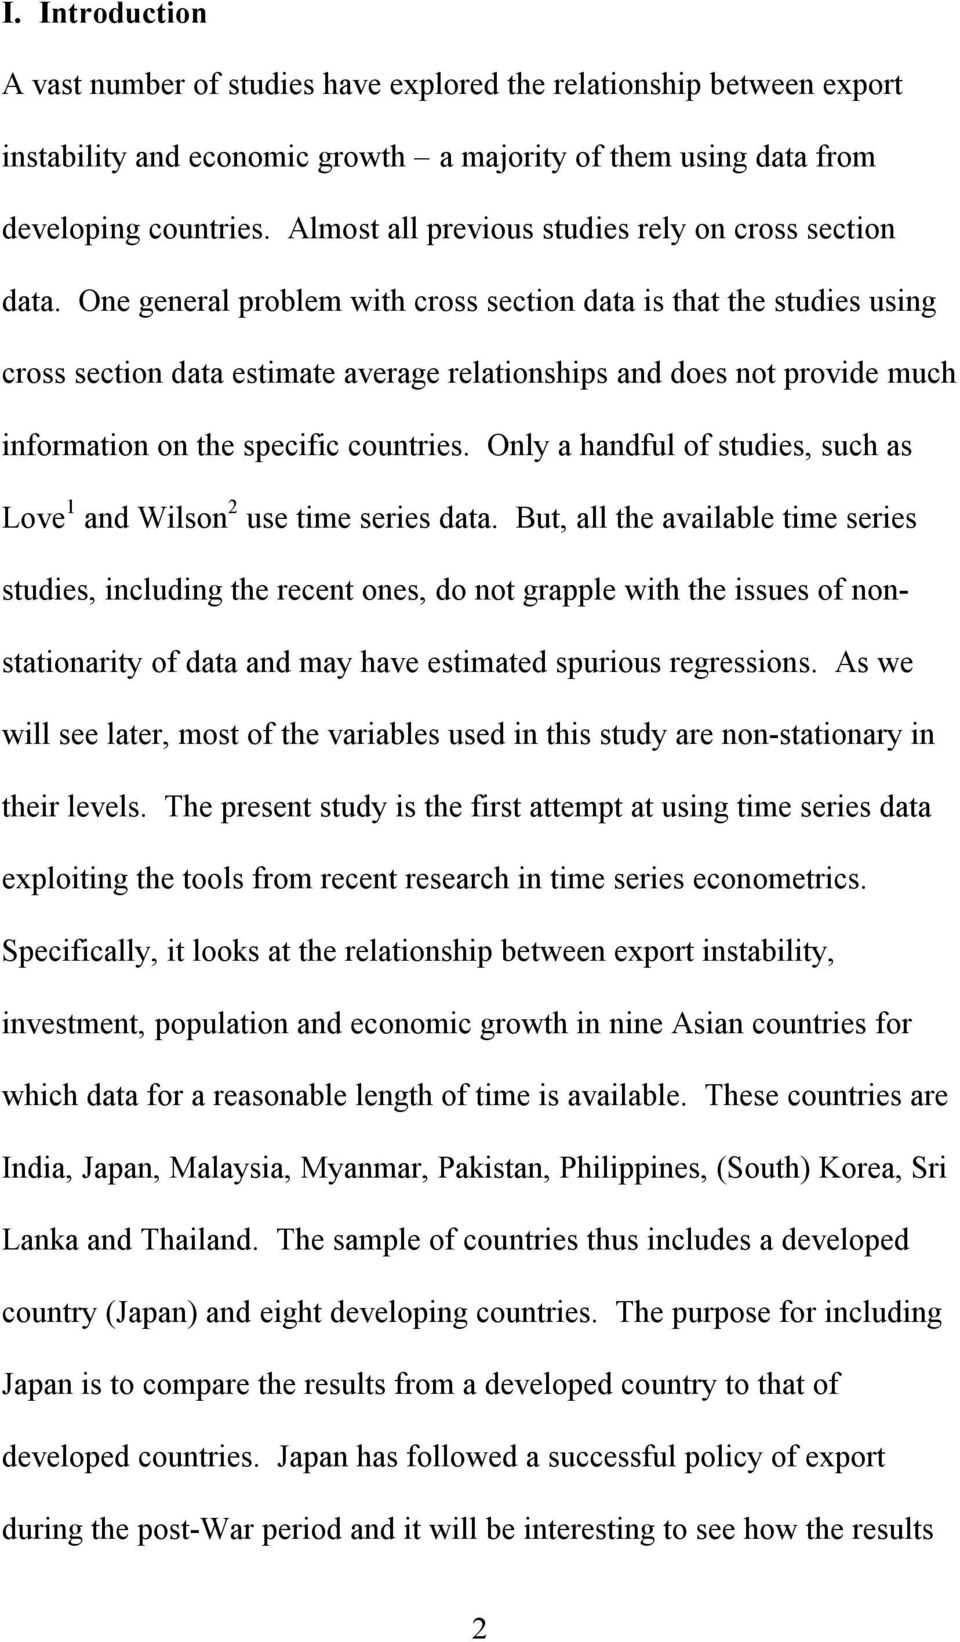 One general problem with cross section data is that the studies using cross section data estimate average relationships and does not provide much information on the specific countries.